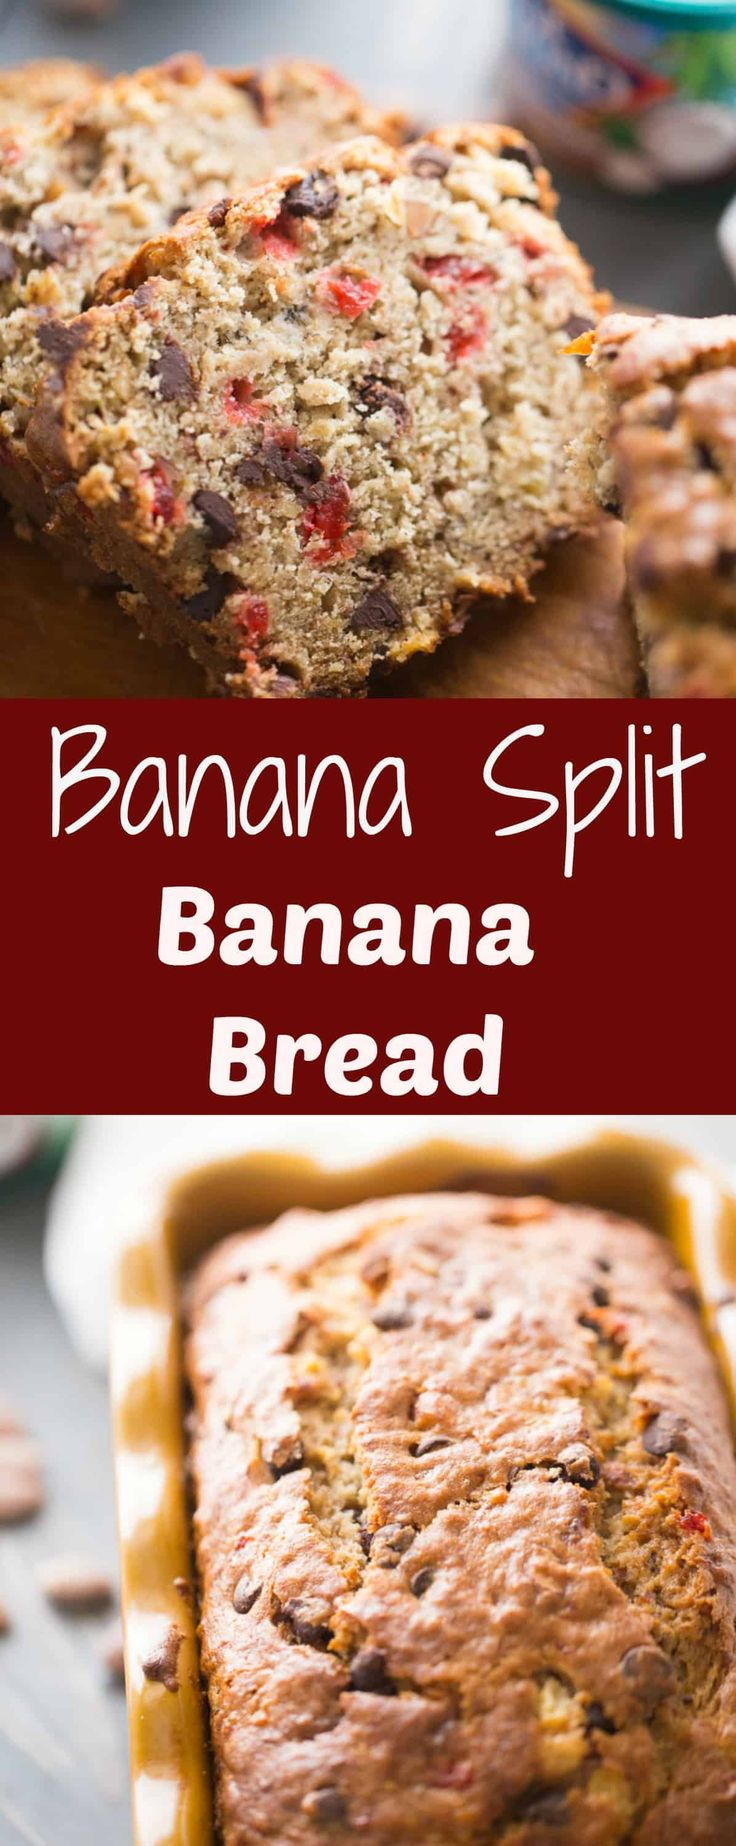 Banana Split Banana Bread - This incredibly moist banana holds everything you'd want in a banana split! In each slice, you'll find bananas, pineapple, cherries, chocolate, and almonds! via @Lemonsforlulu